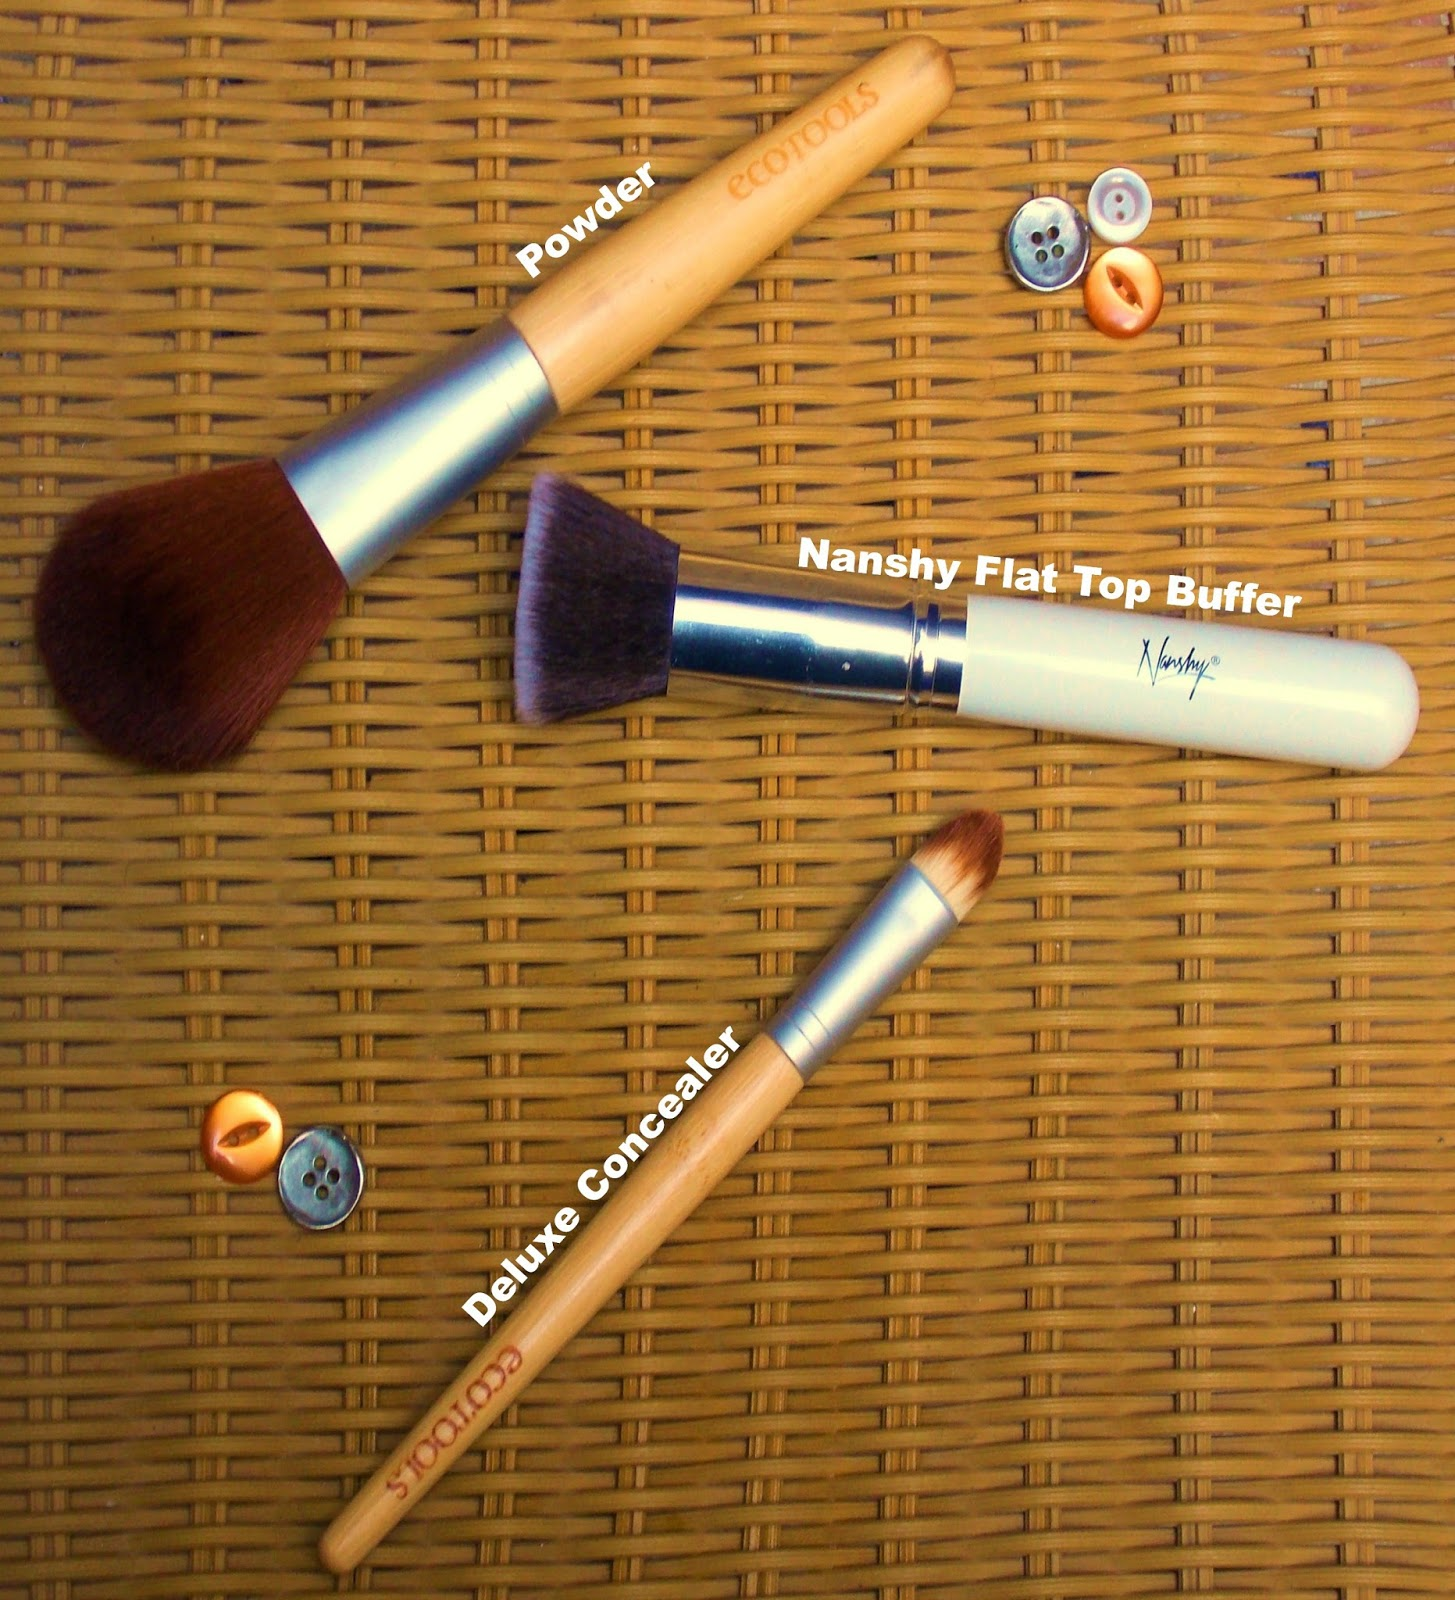 Nanshy Brushes, EcoTools Make Up Brushes, Beauty, correct tools, daily make up brushes, how to create a flawless base, make up brush collection, using make up brushes, why do I need make up brushes,